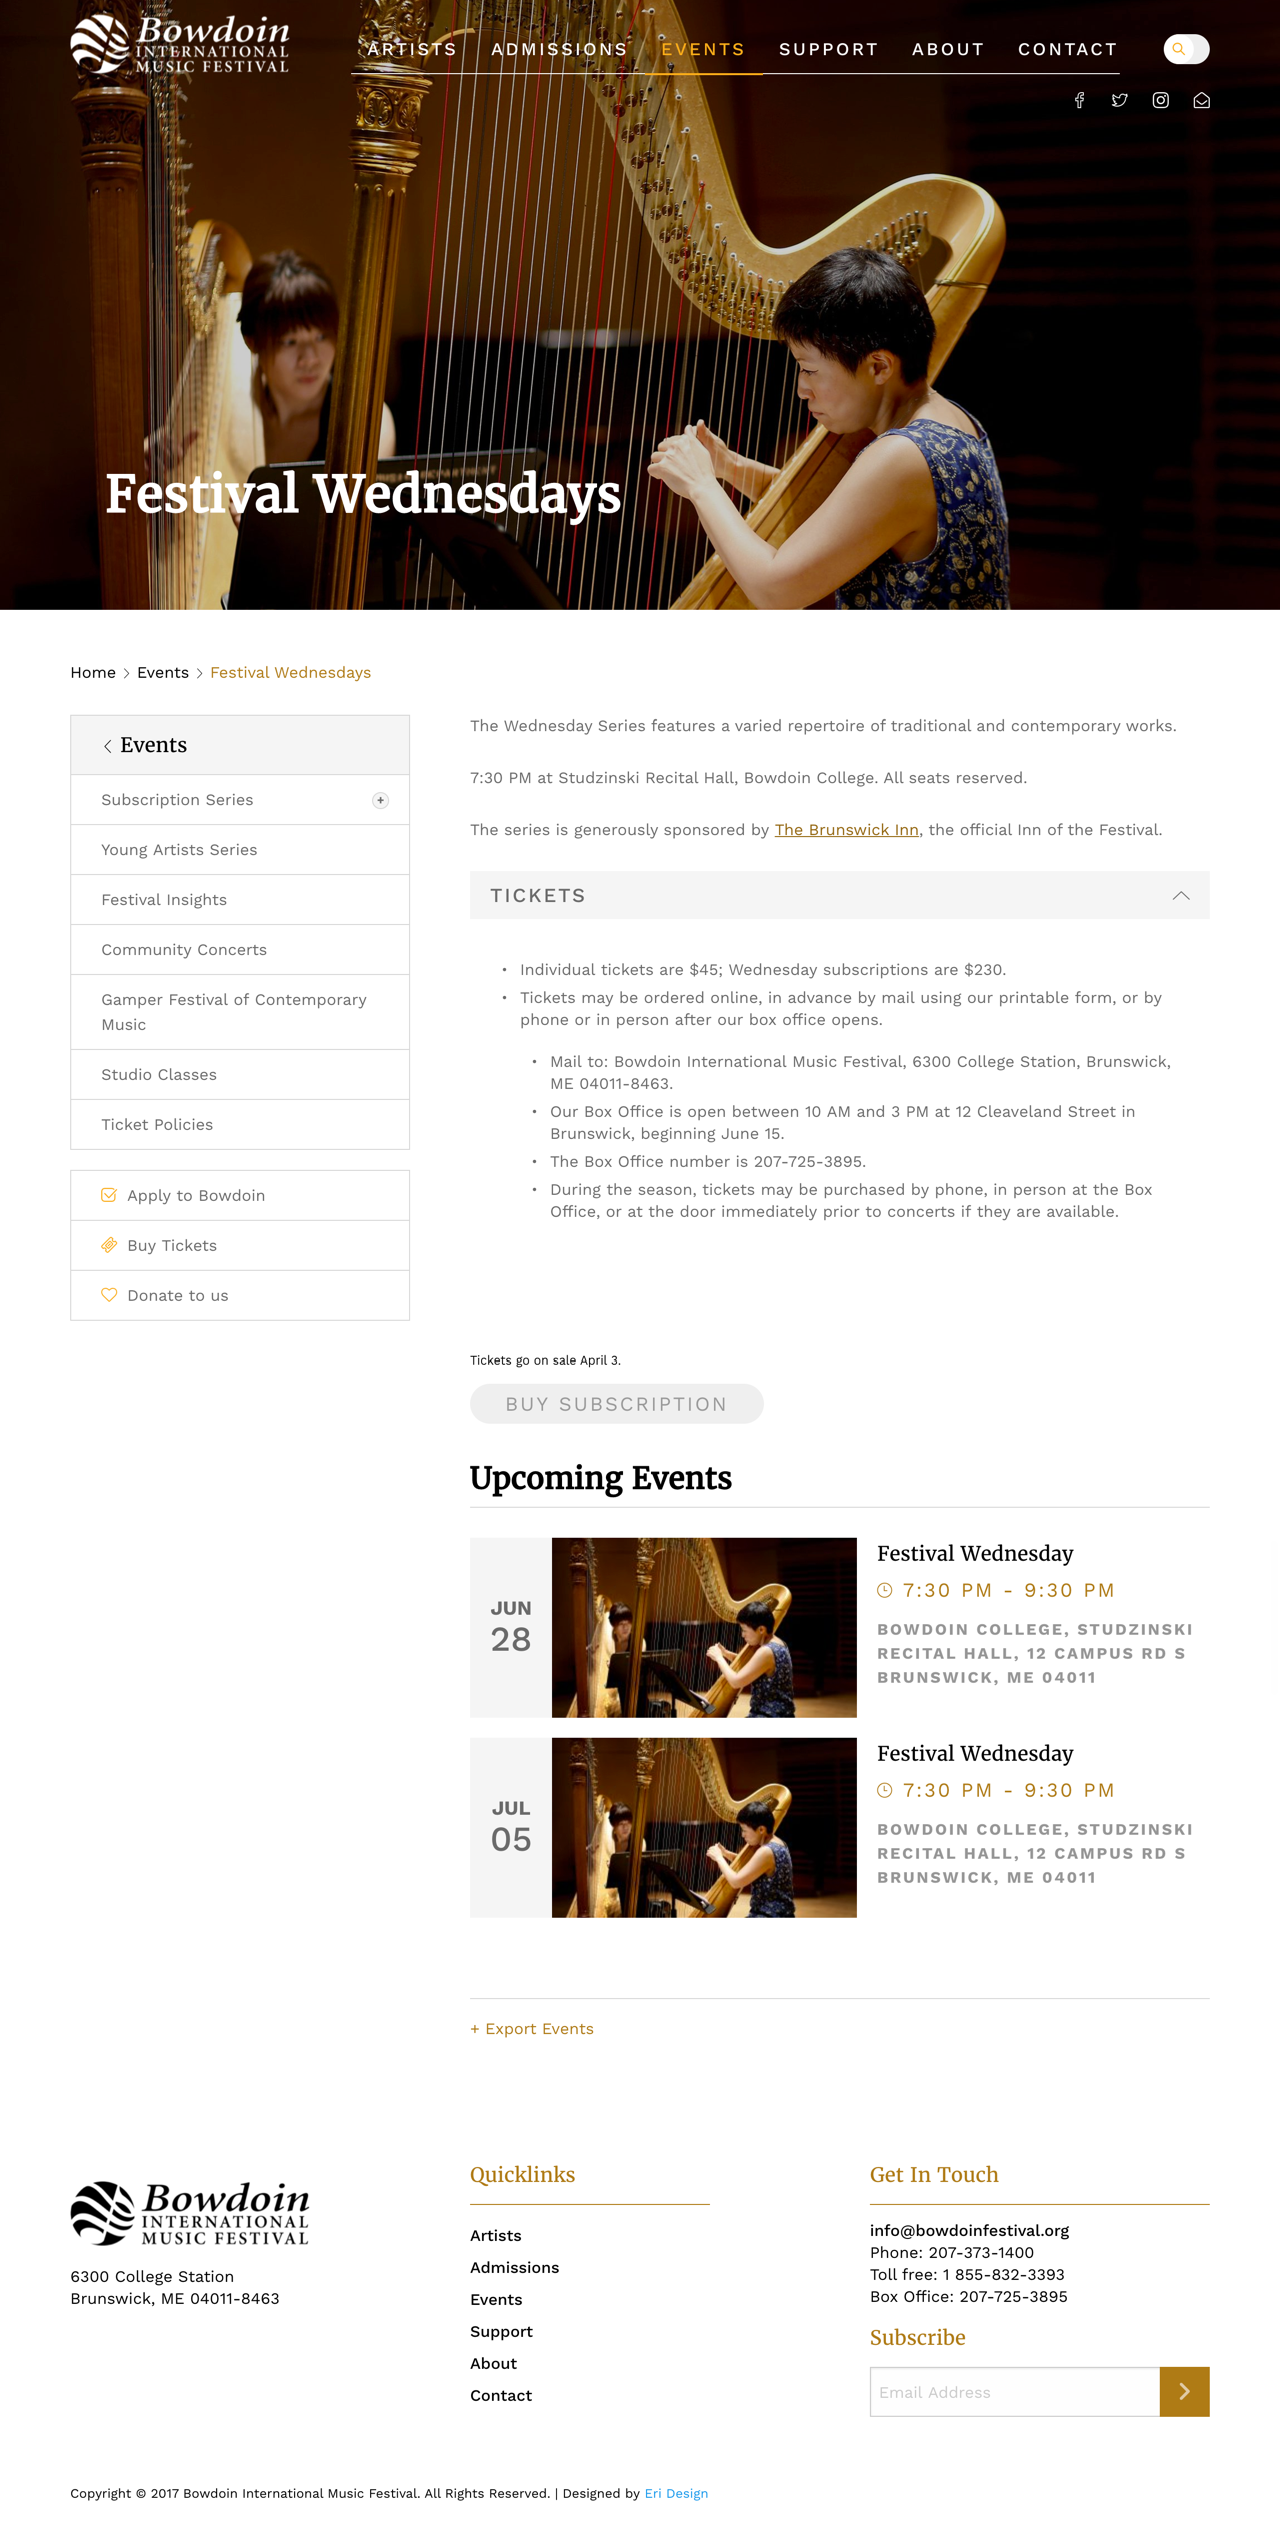 Bowdoin Festival events page